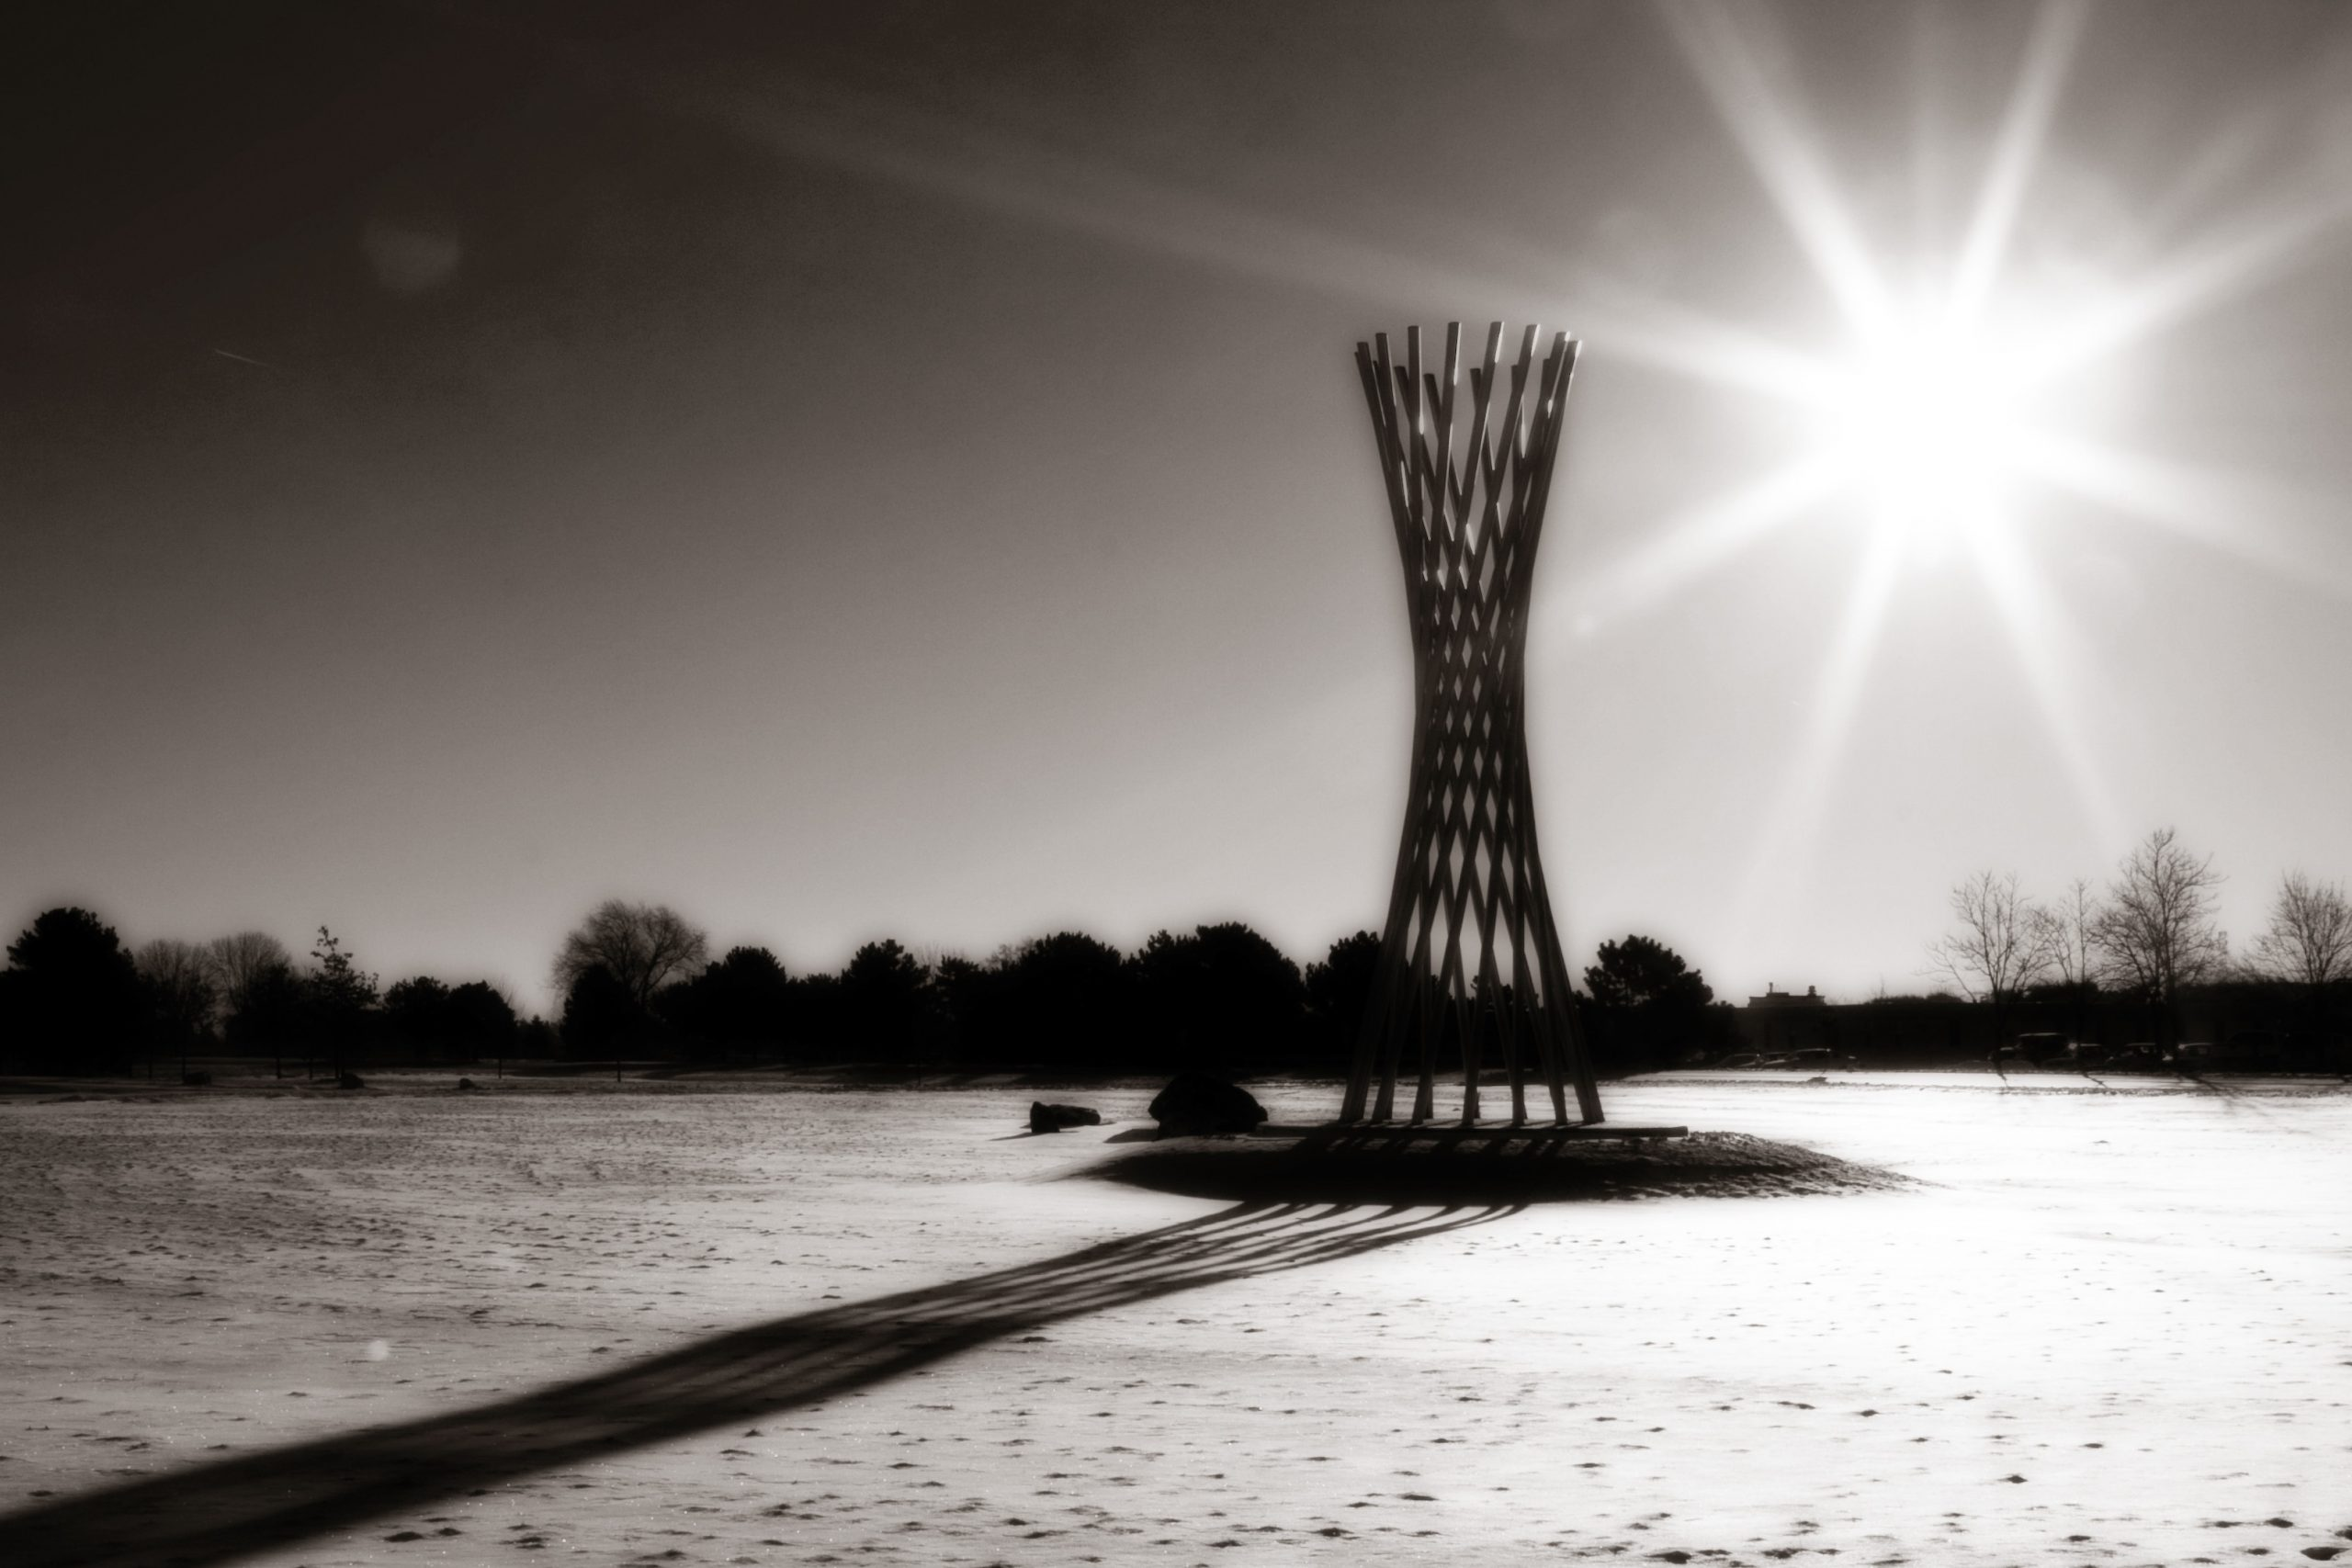 The sun rises over Tractricious on Dec. 4, 2008. sculpture, nature, Tractricious, sun, sunrise, sky Photo: Tom Nicol